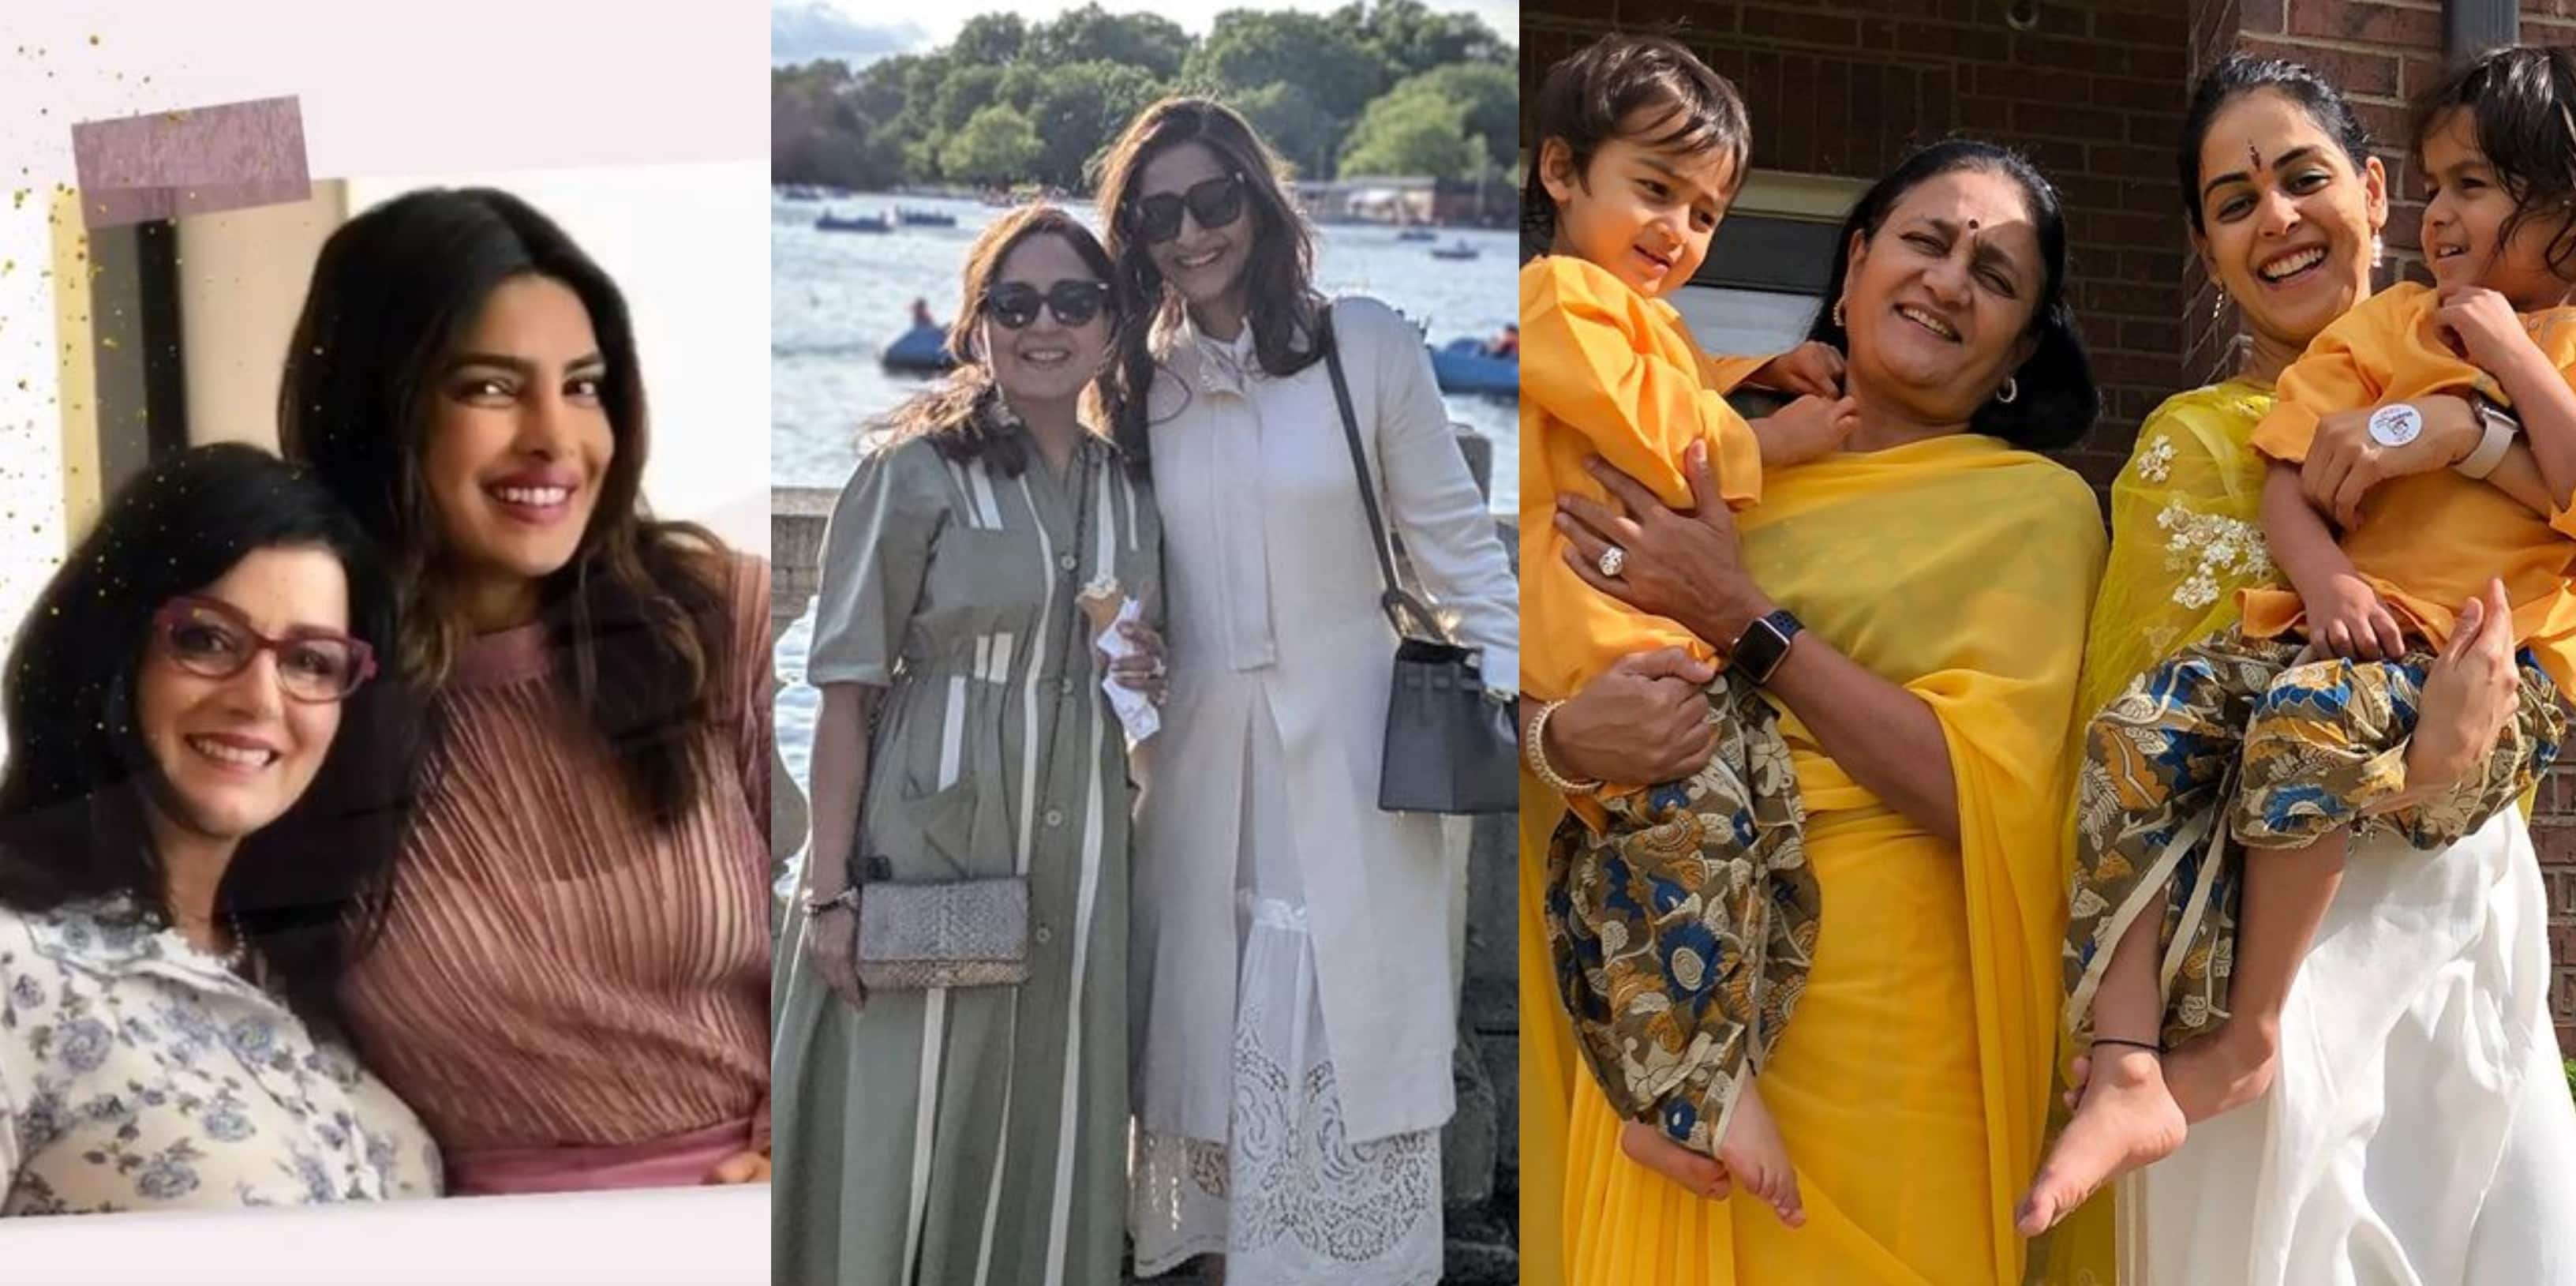 Mothers Day 2020: Sonam Kapoor, Priyanka Chopra And Others Give A Shout Out To Their Mothers-In-Law For Being The Best